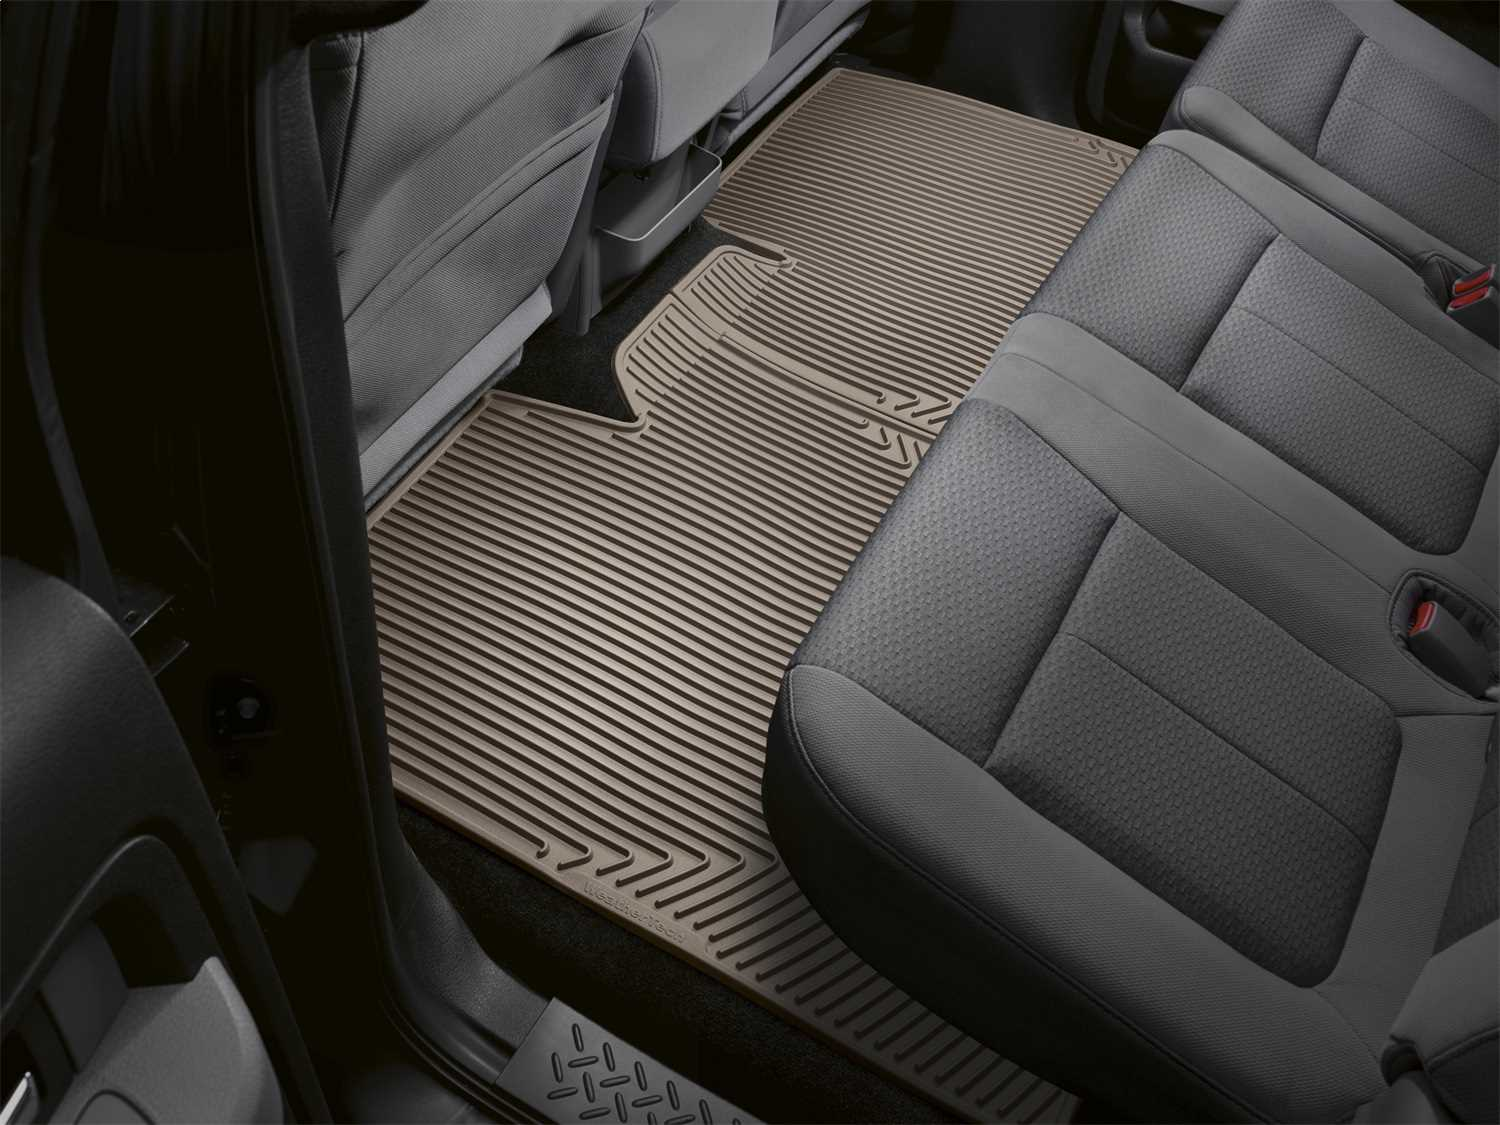 W167TN-W273TN WeatherTech All Weather Floor Mats